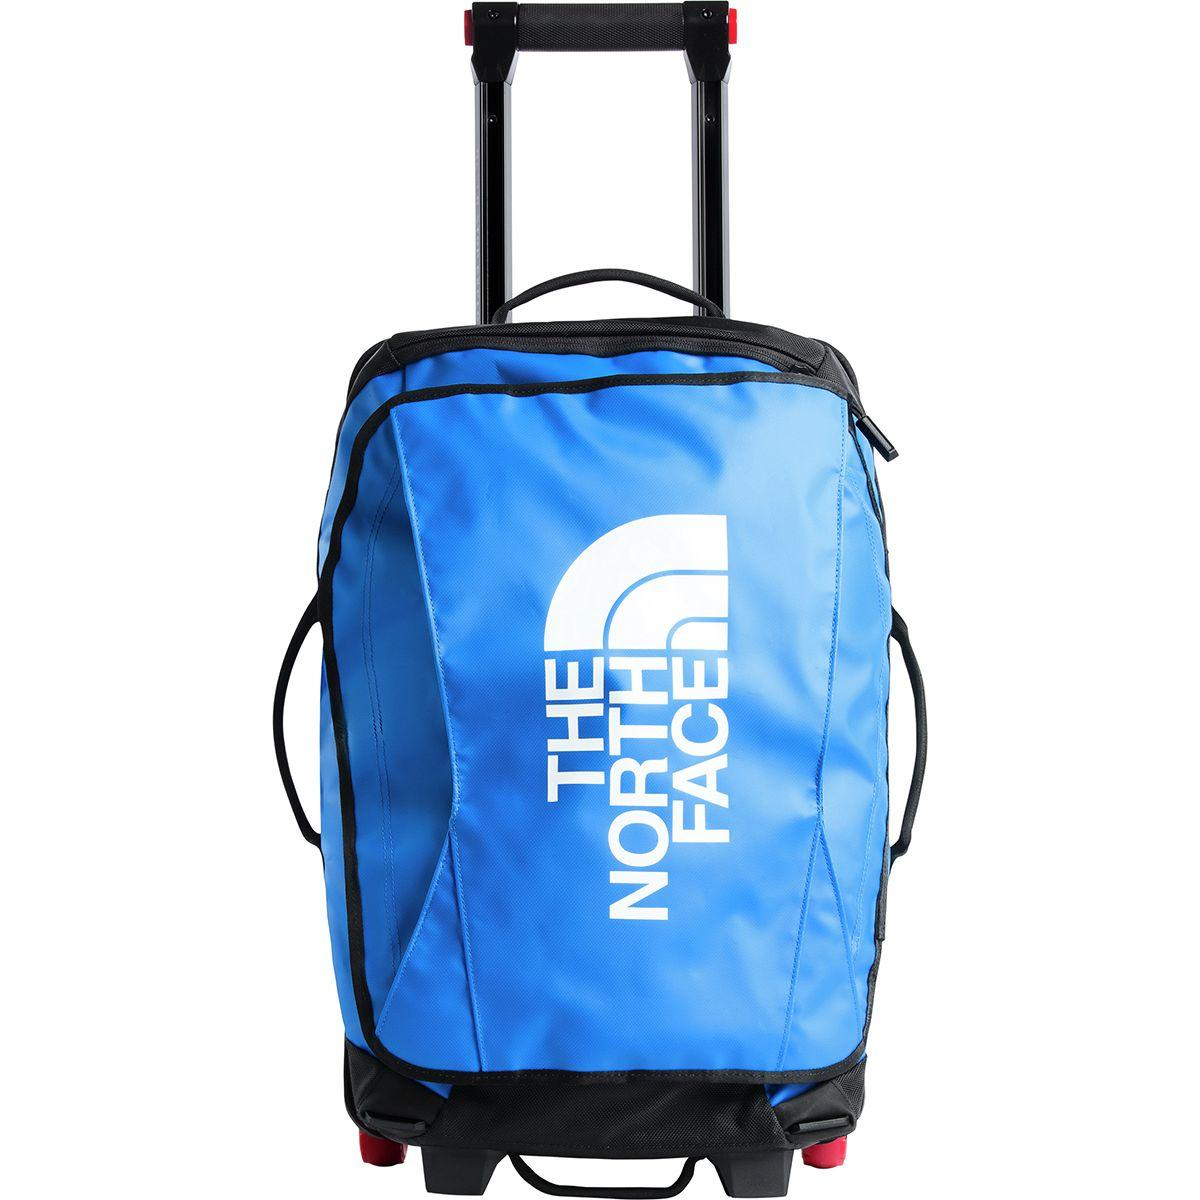 68ab0a506 Lyst - The North Face Rolling Thunder 22in Carry-on Bag in Blue for Men